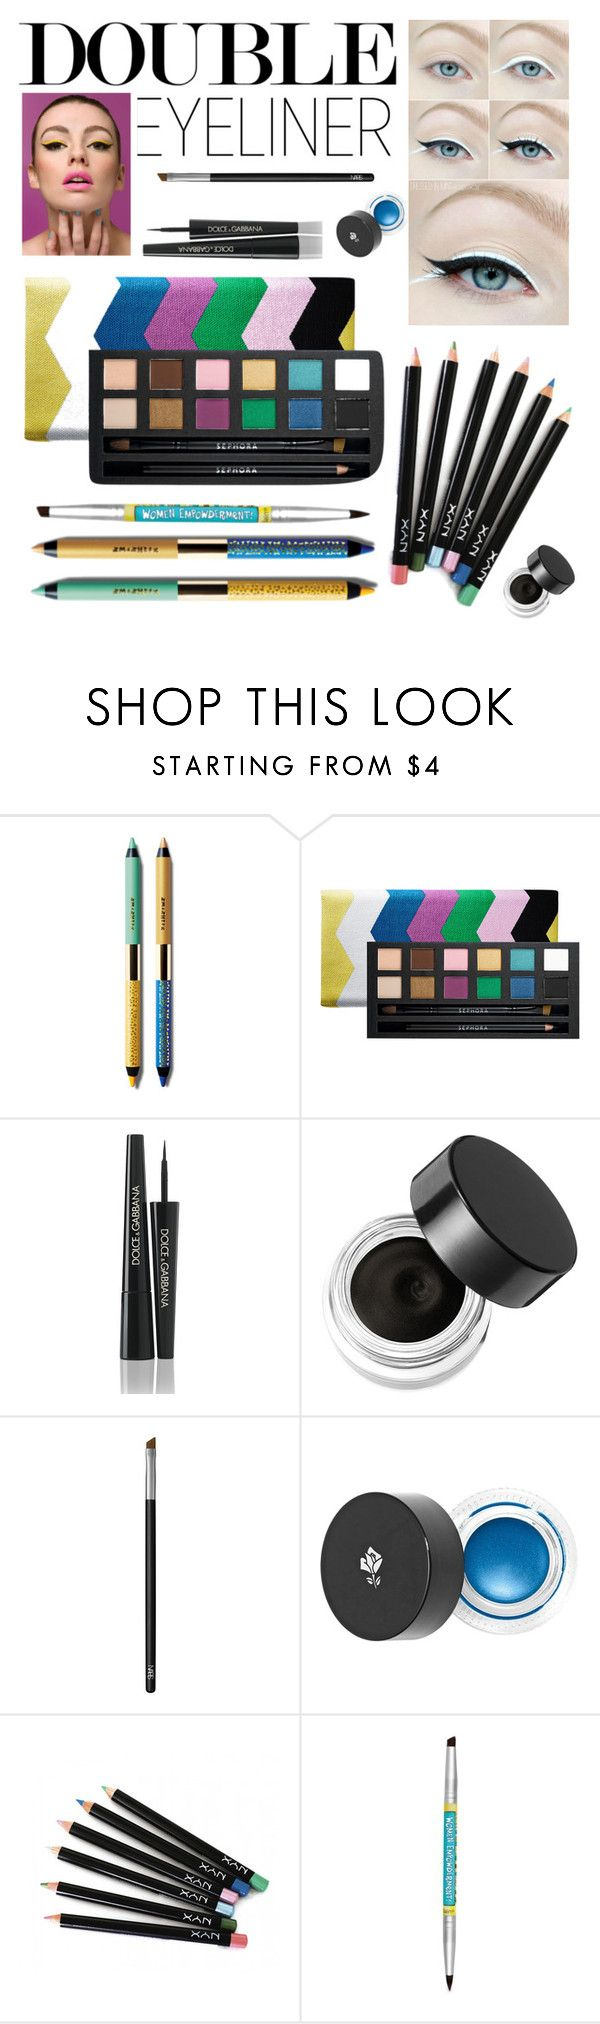 """Double Eyeliner"" by stylebycharlene on Polyvore featuring beauty, Smashbox, Sephora Collection, Dolce&Gabbana, Napoleon Perdis, NARS Cosmetics, Lancôme and NYX"